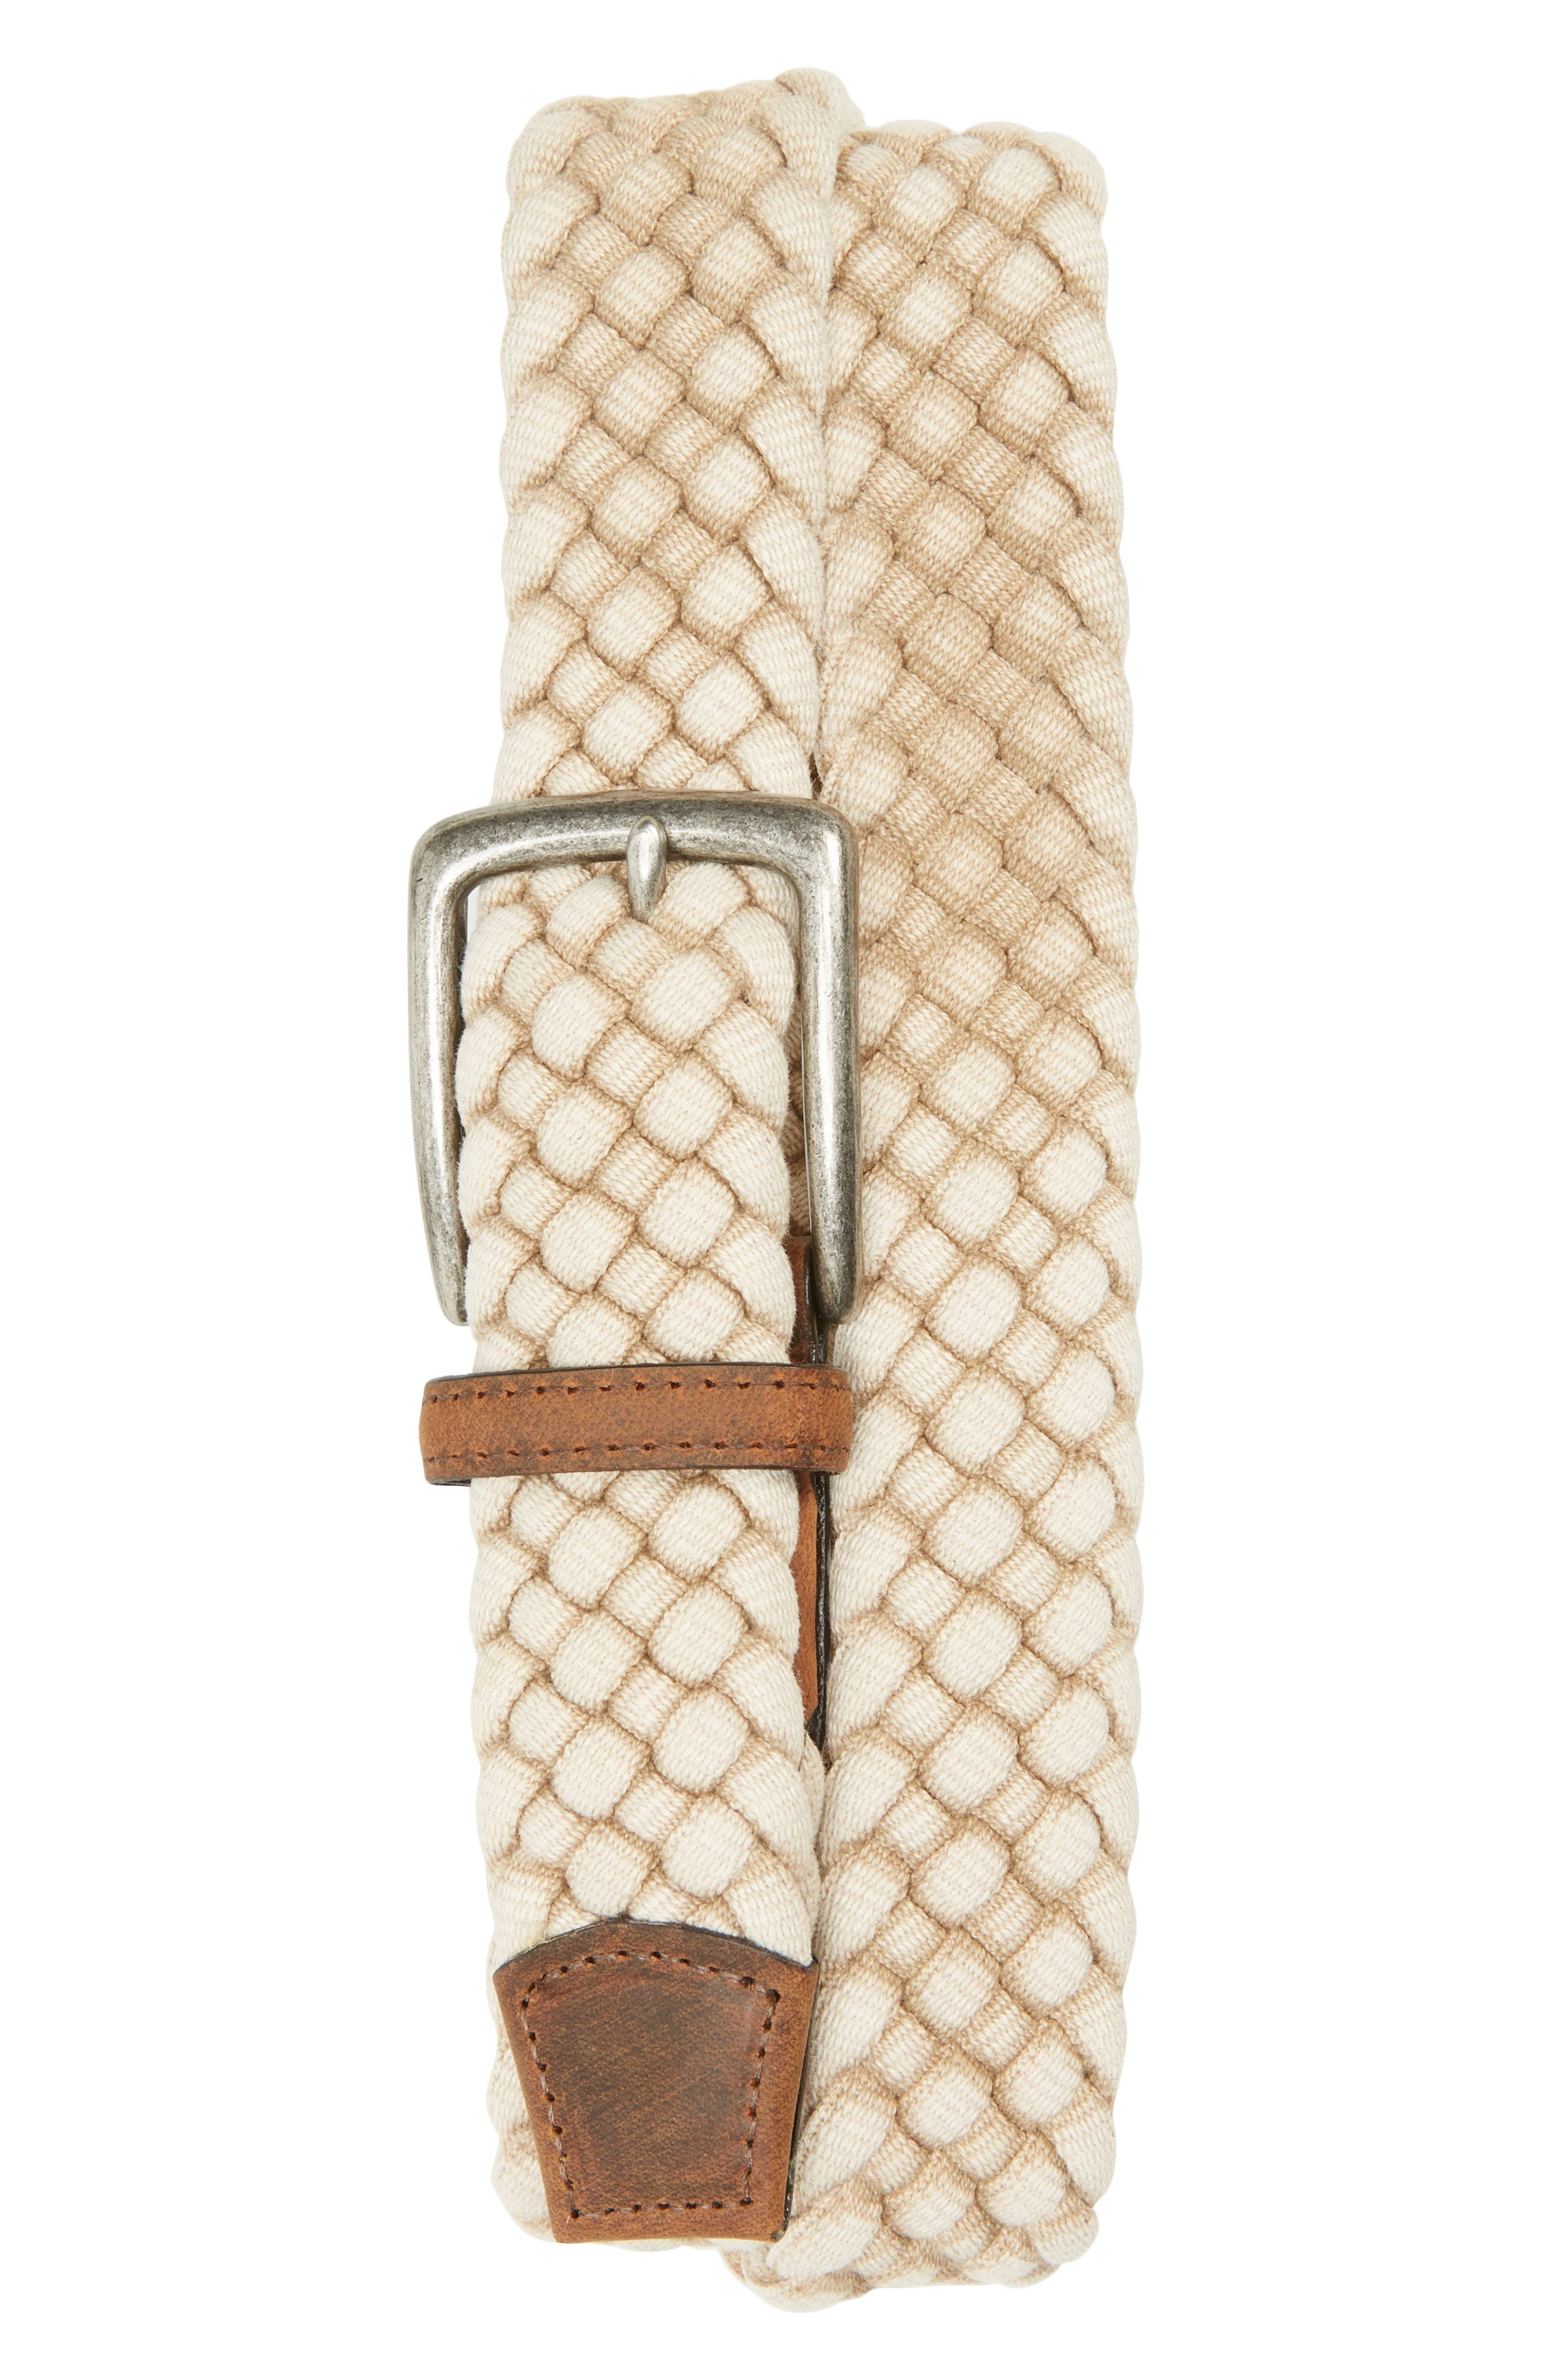 Woven Italian cotton and rich calfskin trim define a stylish, American-made belt with easy charm. Style Name: Torino Woven Cotton Belt. Style Number: 5834337. Available in stores.